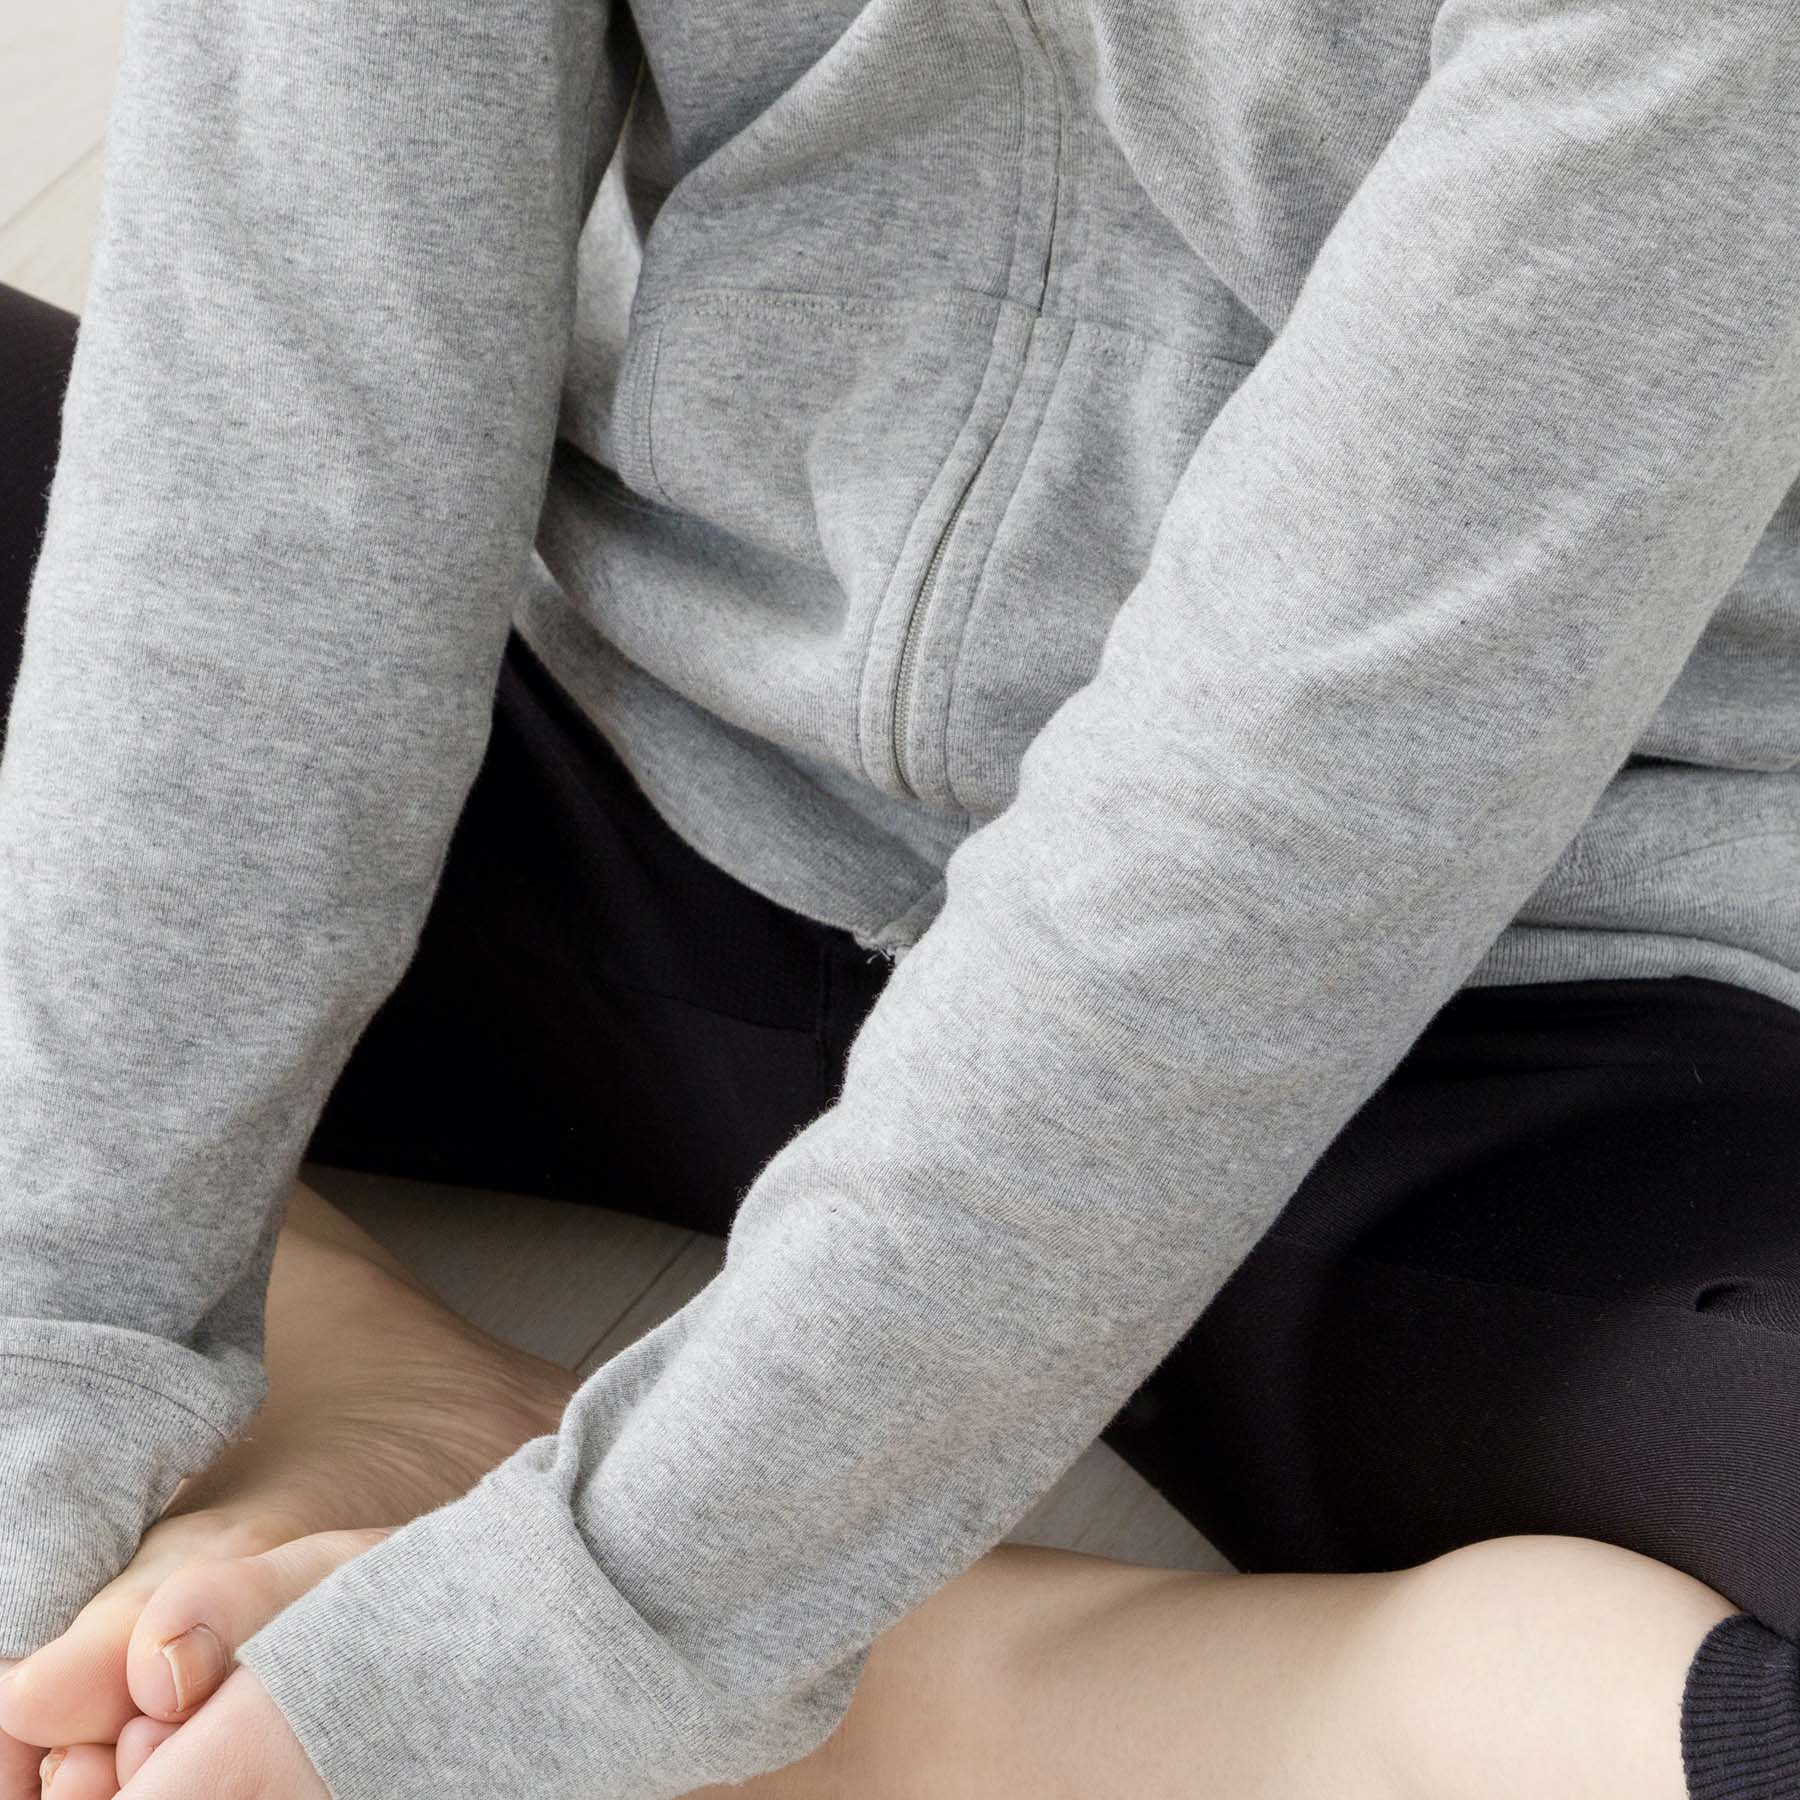 Pelvic Floor Exercises for Menopause: Why You Should Be Doing Them